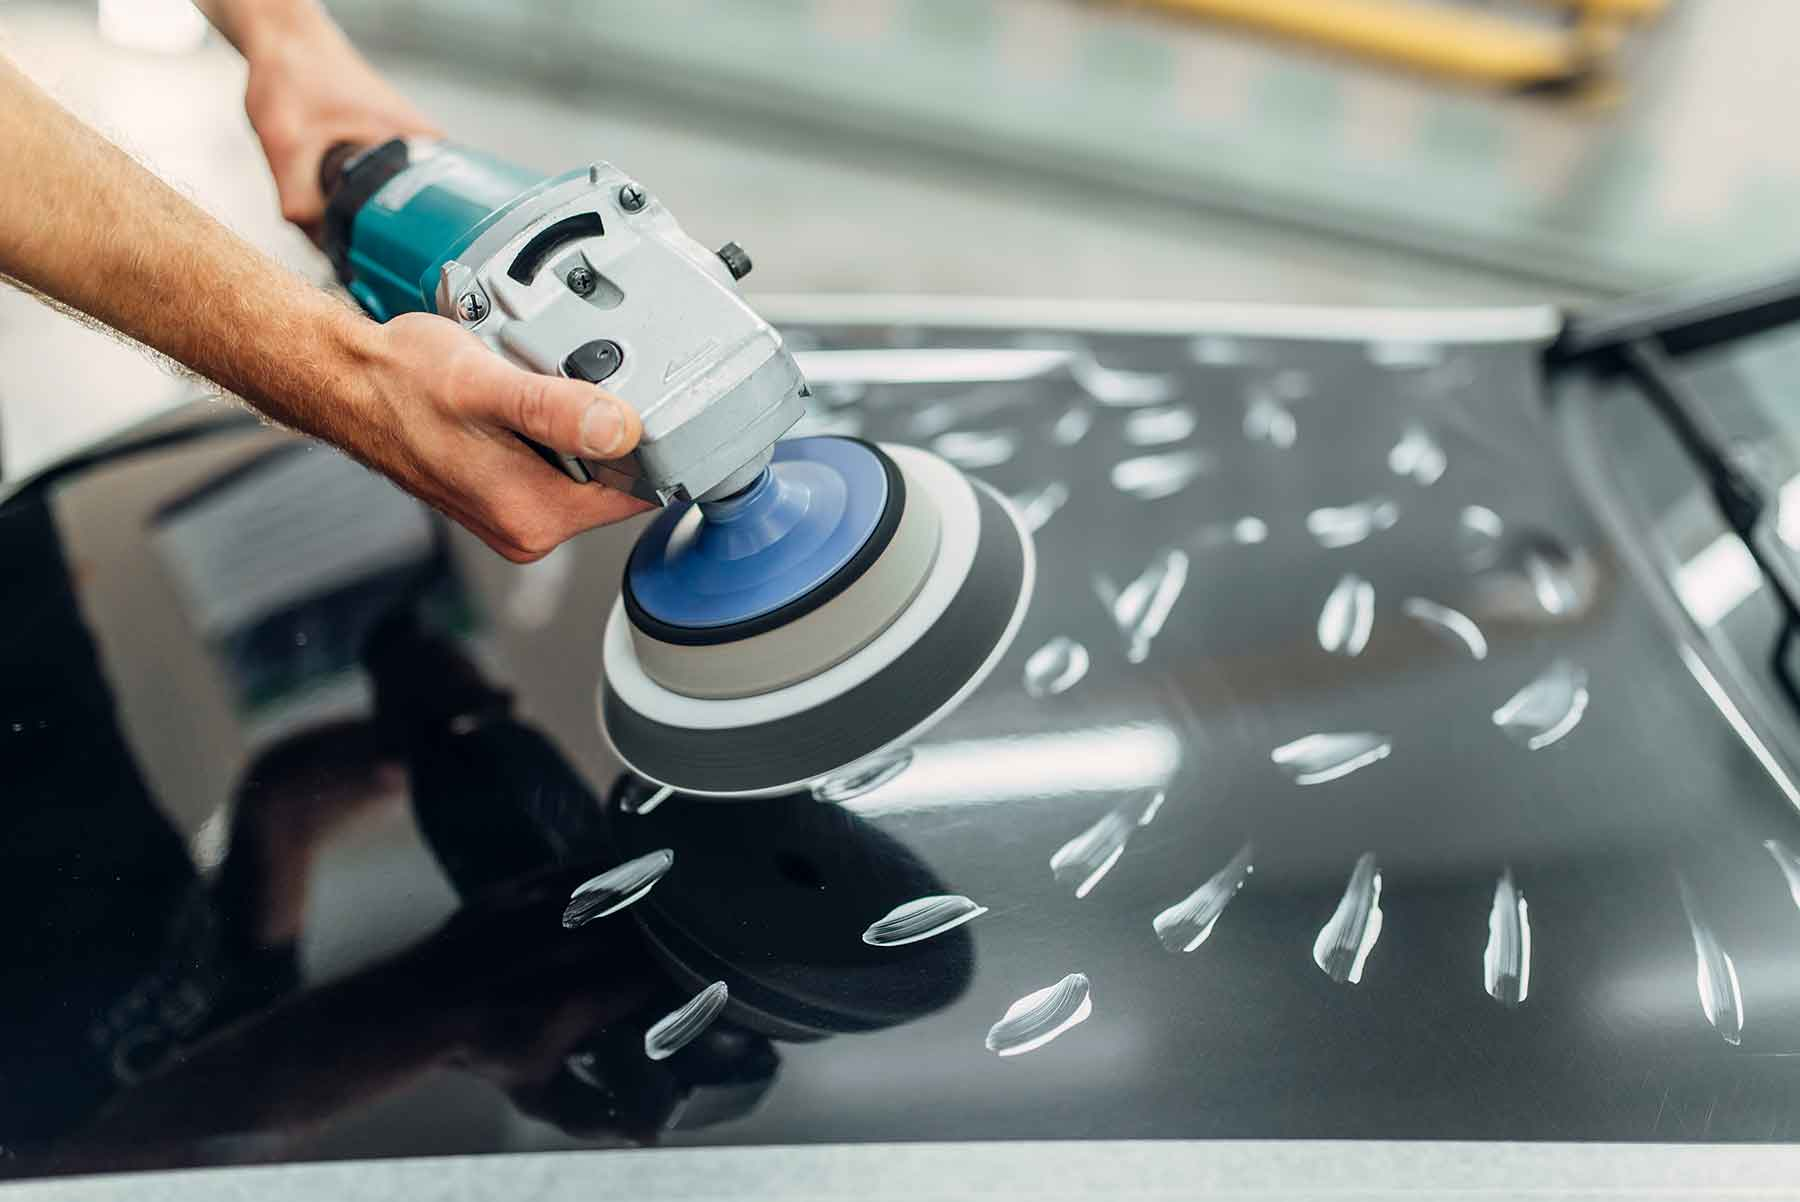 worker-with-polishing-machine-cleans-car-hood-CHRUM83